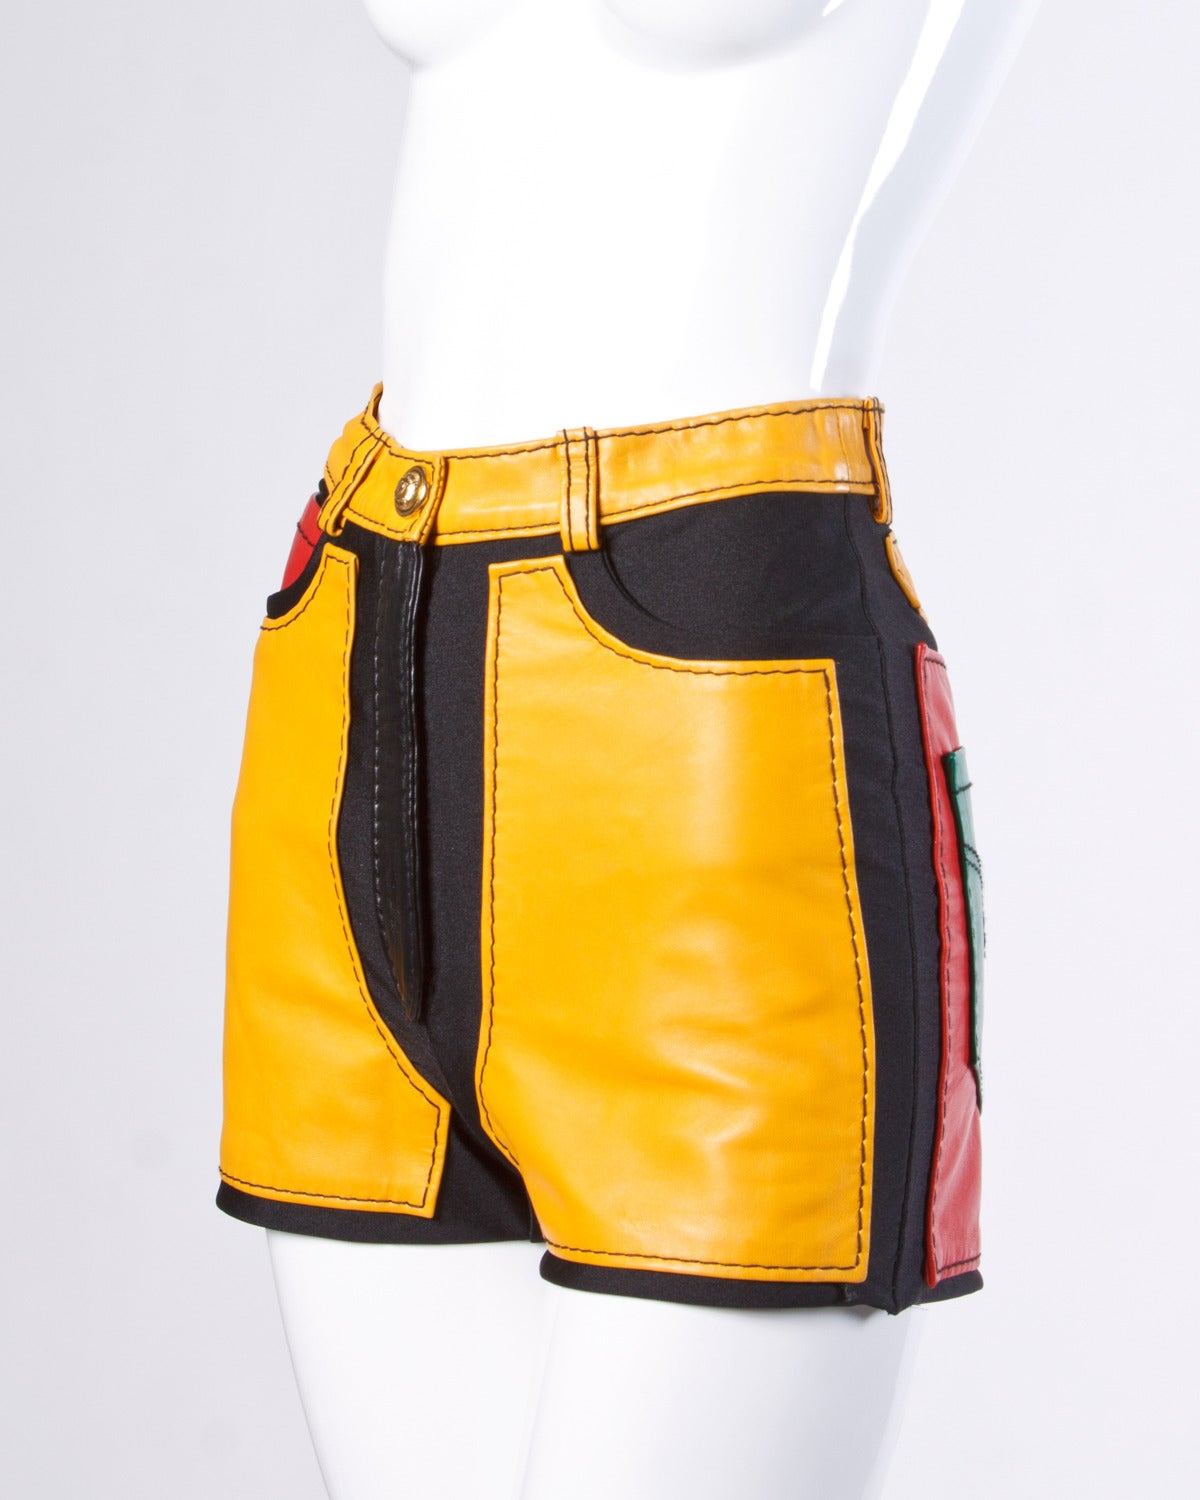 1993 Unworn Moschino Leather Color Block High Waist Hot Pants / Shorts 2